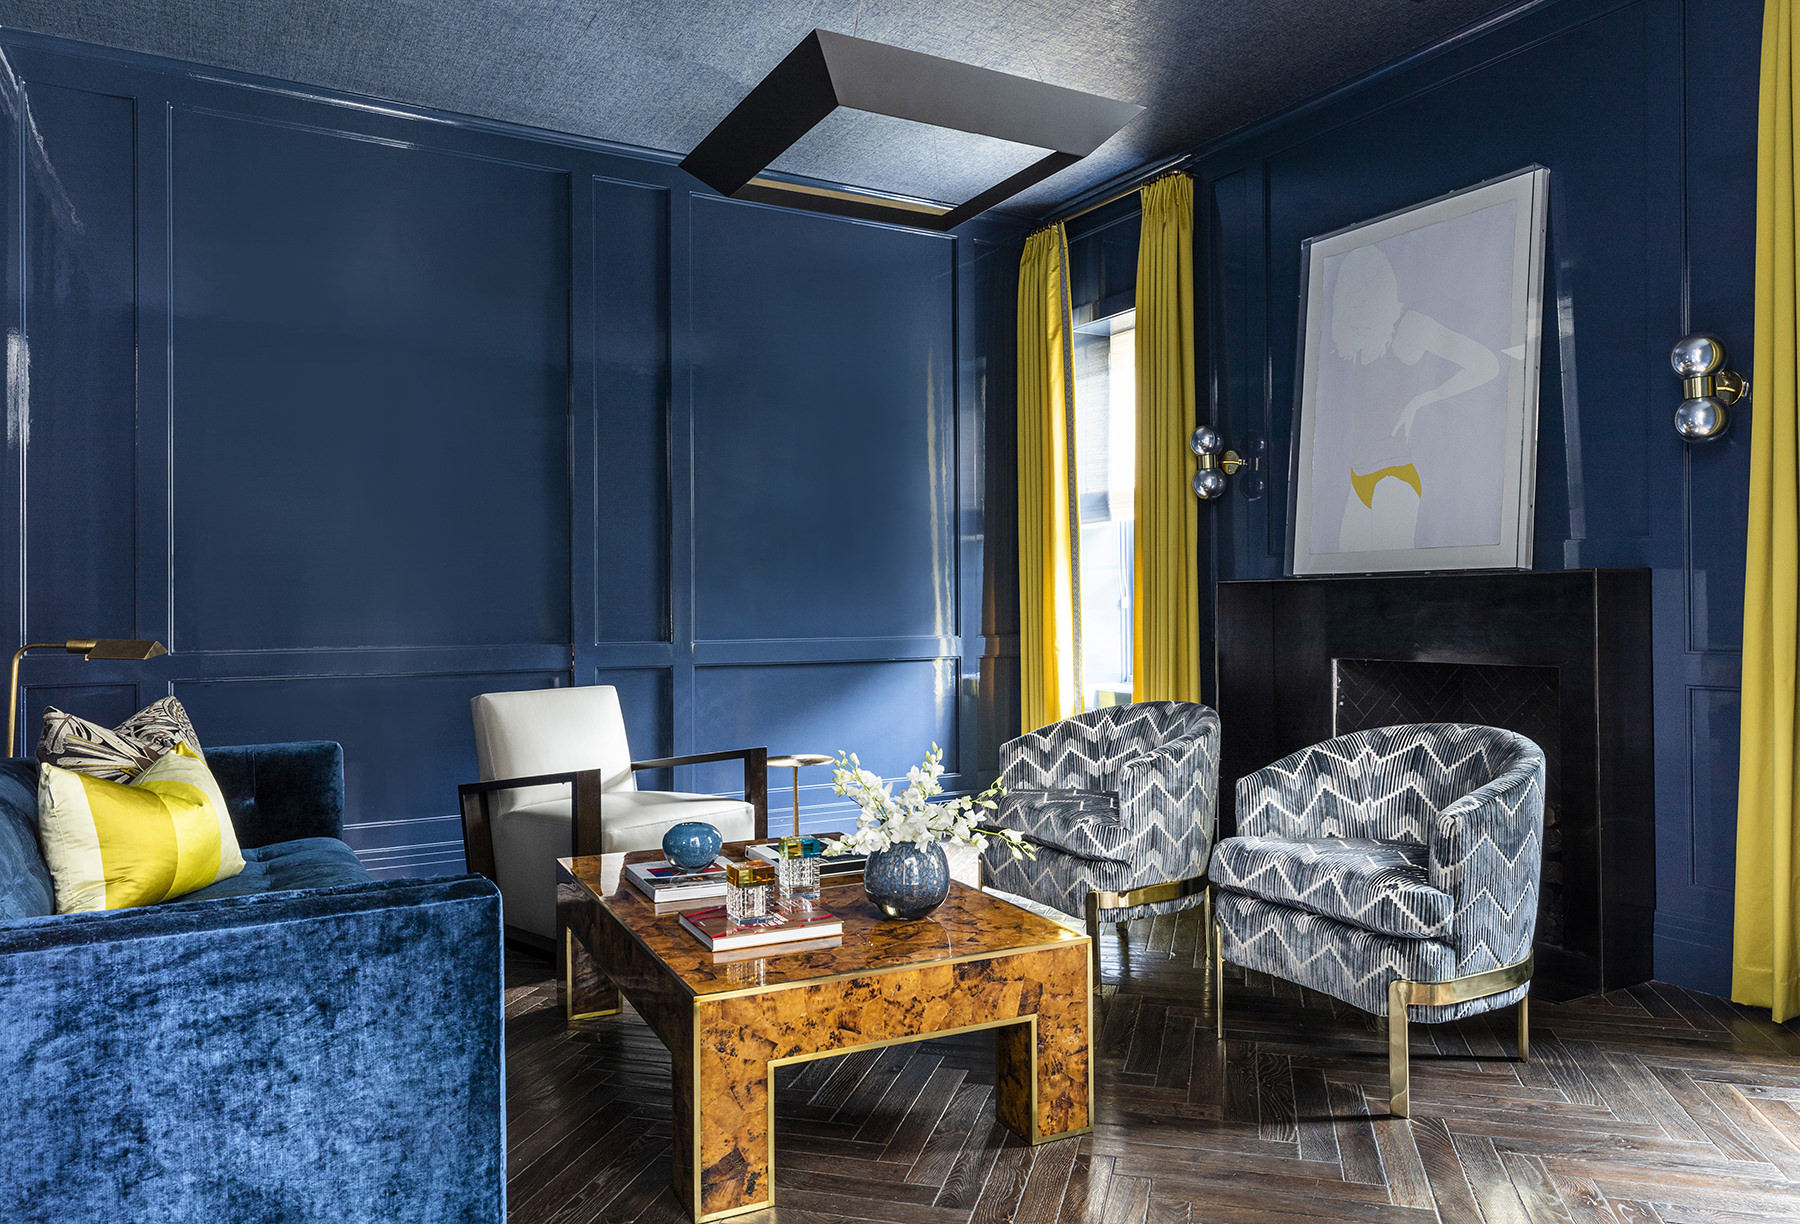 modern custom living room interior with blue and yellow accents